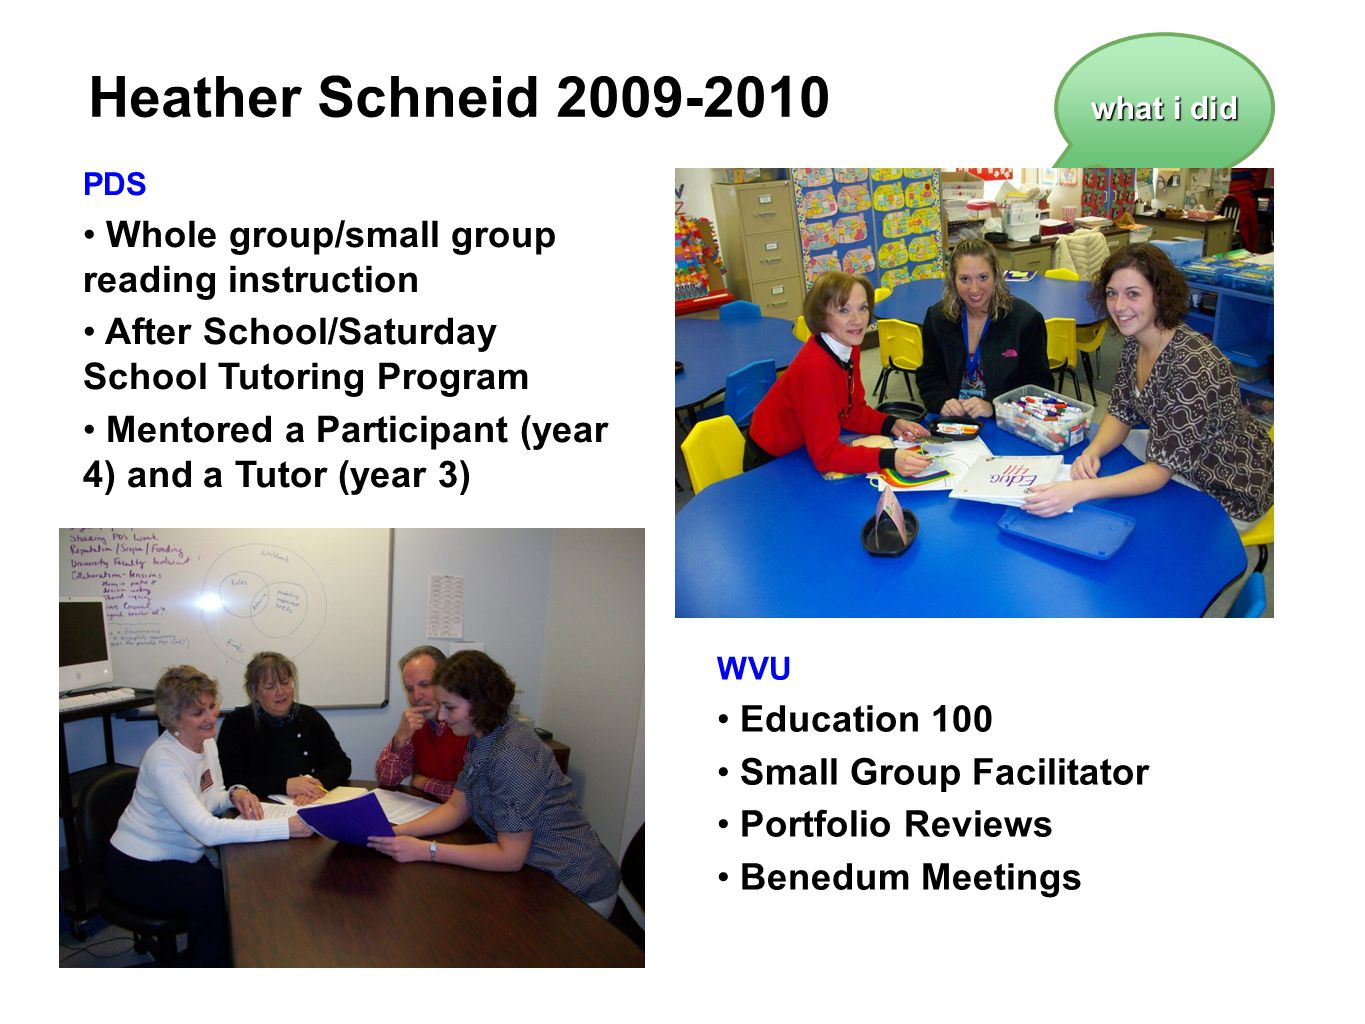 Heather Schneid 2009-2010 Whole group/small group reading instruction